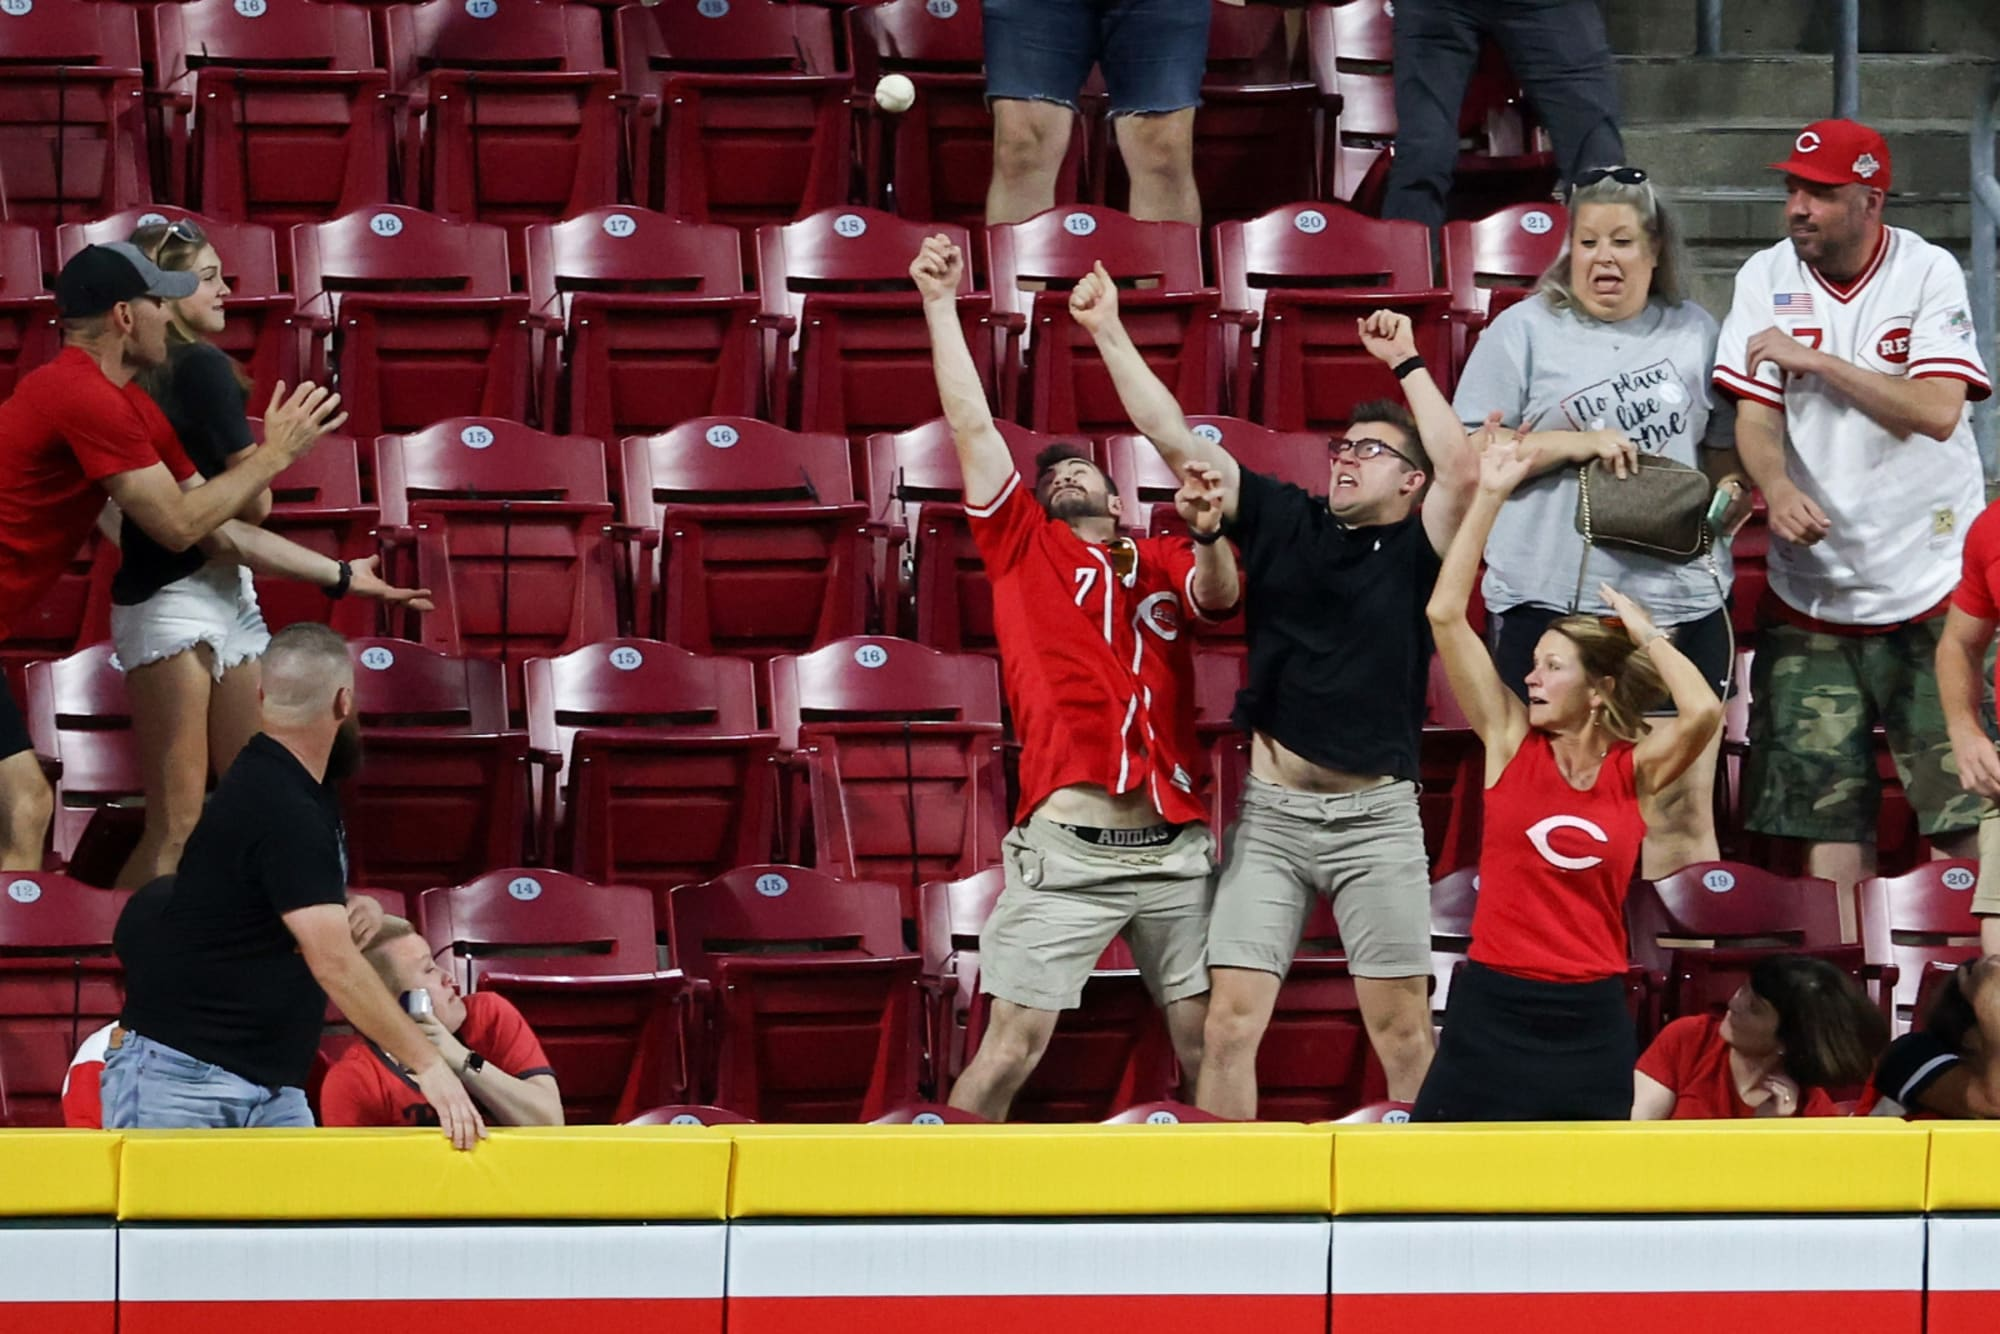 Reds fan bares all in fulfilling awkward 2021 World Series bet